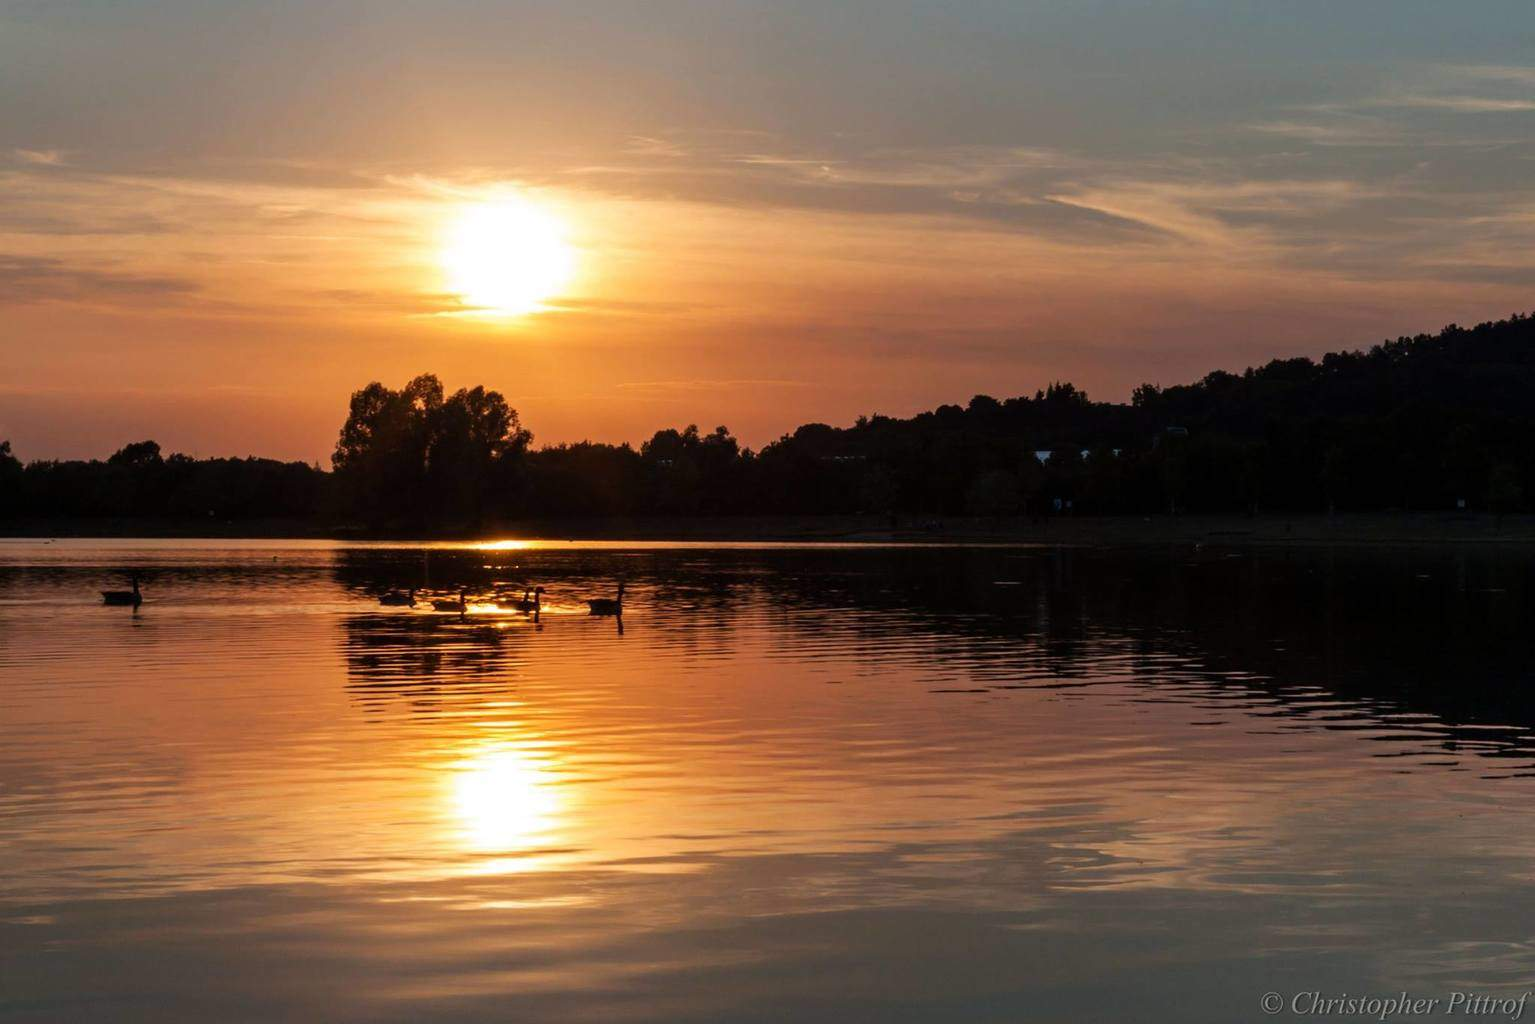 Today's beautiful sunset as seen from our little lake we have around here in Kulmbach (Northern Bavaria, Germany).